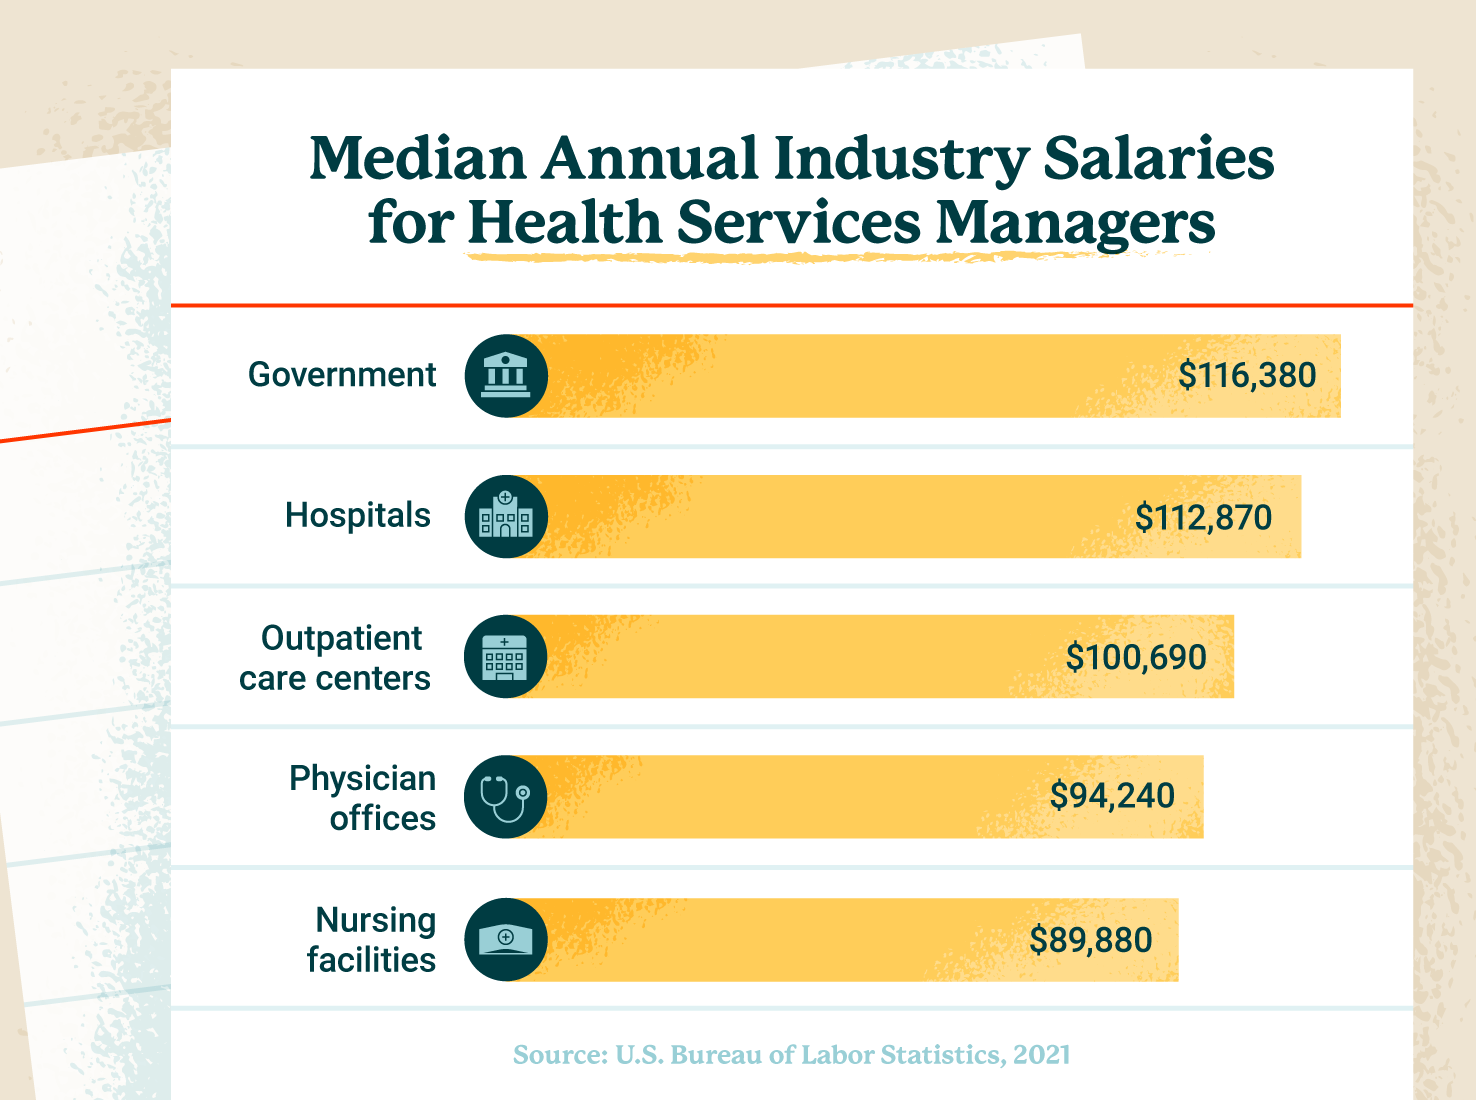 Median salaries for healthcare services managers by industry